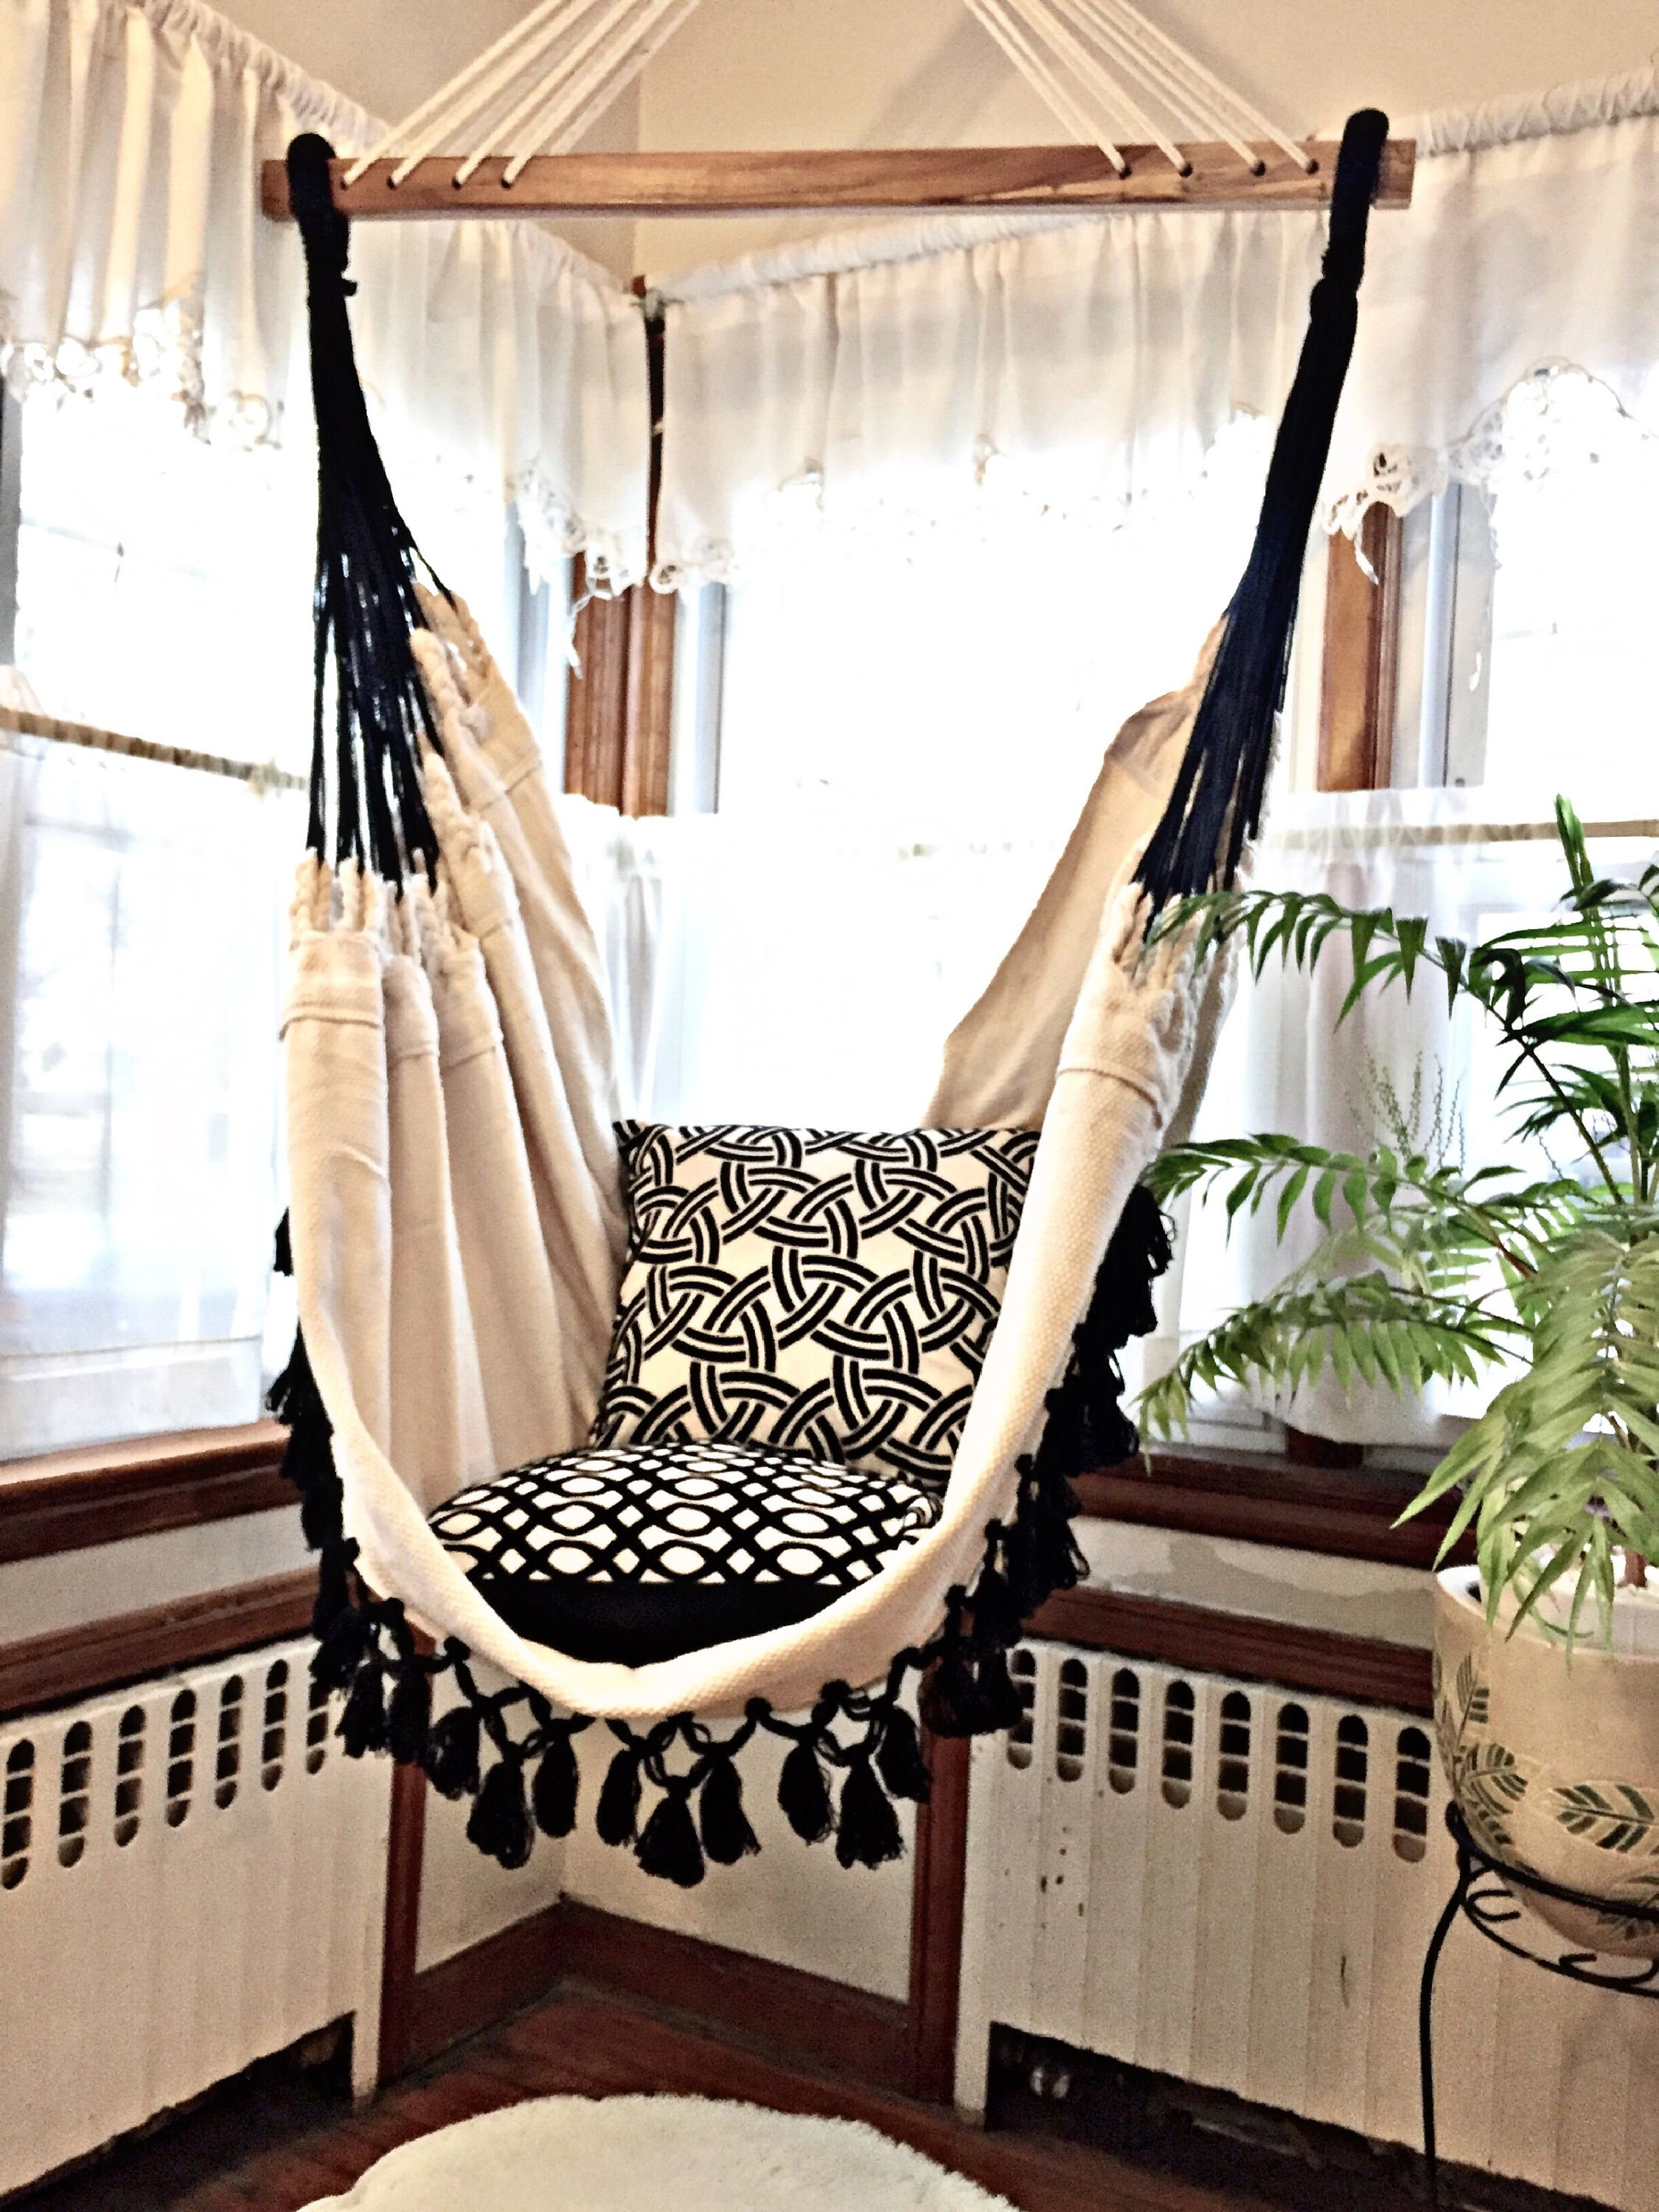 Exclusive List For Eva Hammock Chair Black Fringe 6 Feet Long White Chair Hanging Chair Cotton Hammoc Diy Hammock Chair Hanging Chair Hammock Chair Stand